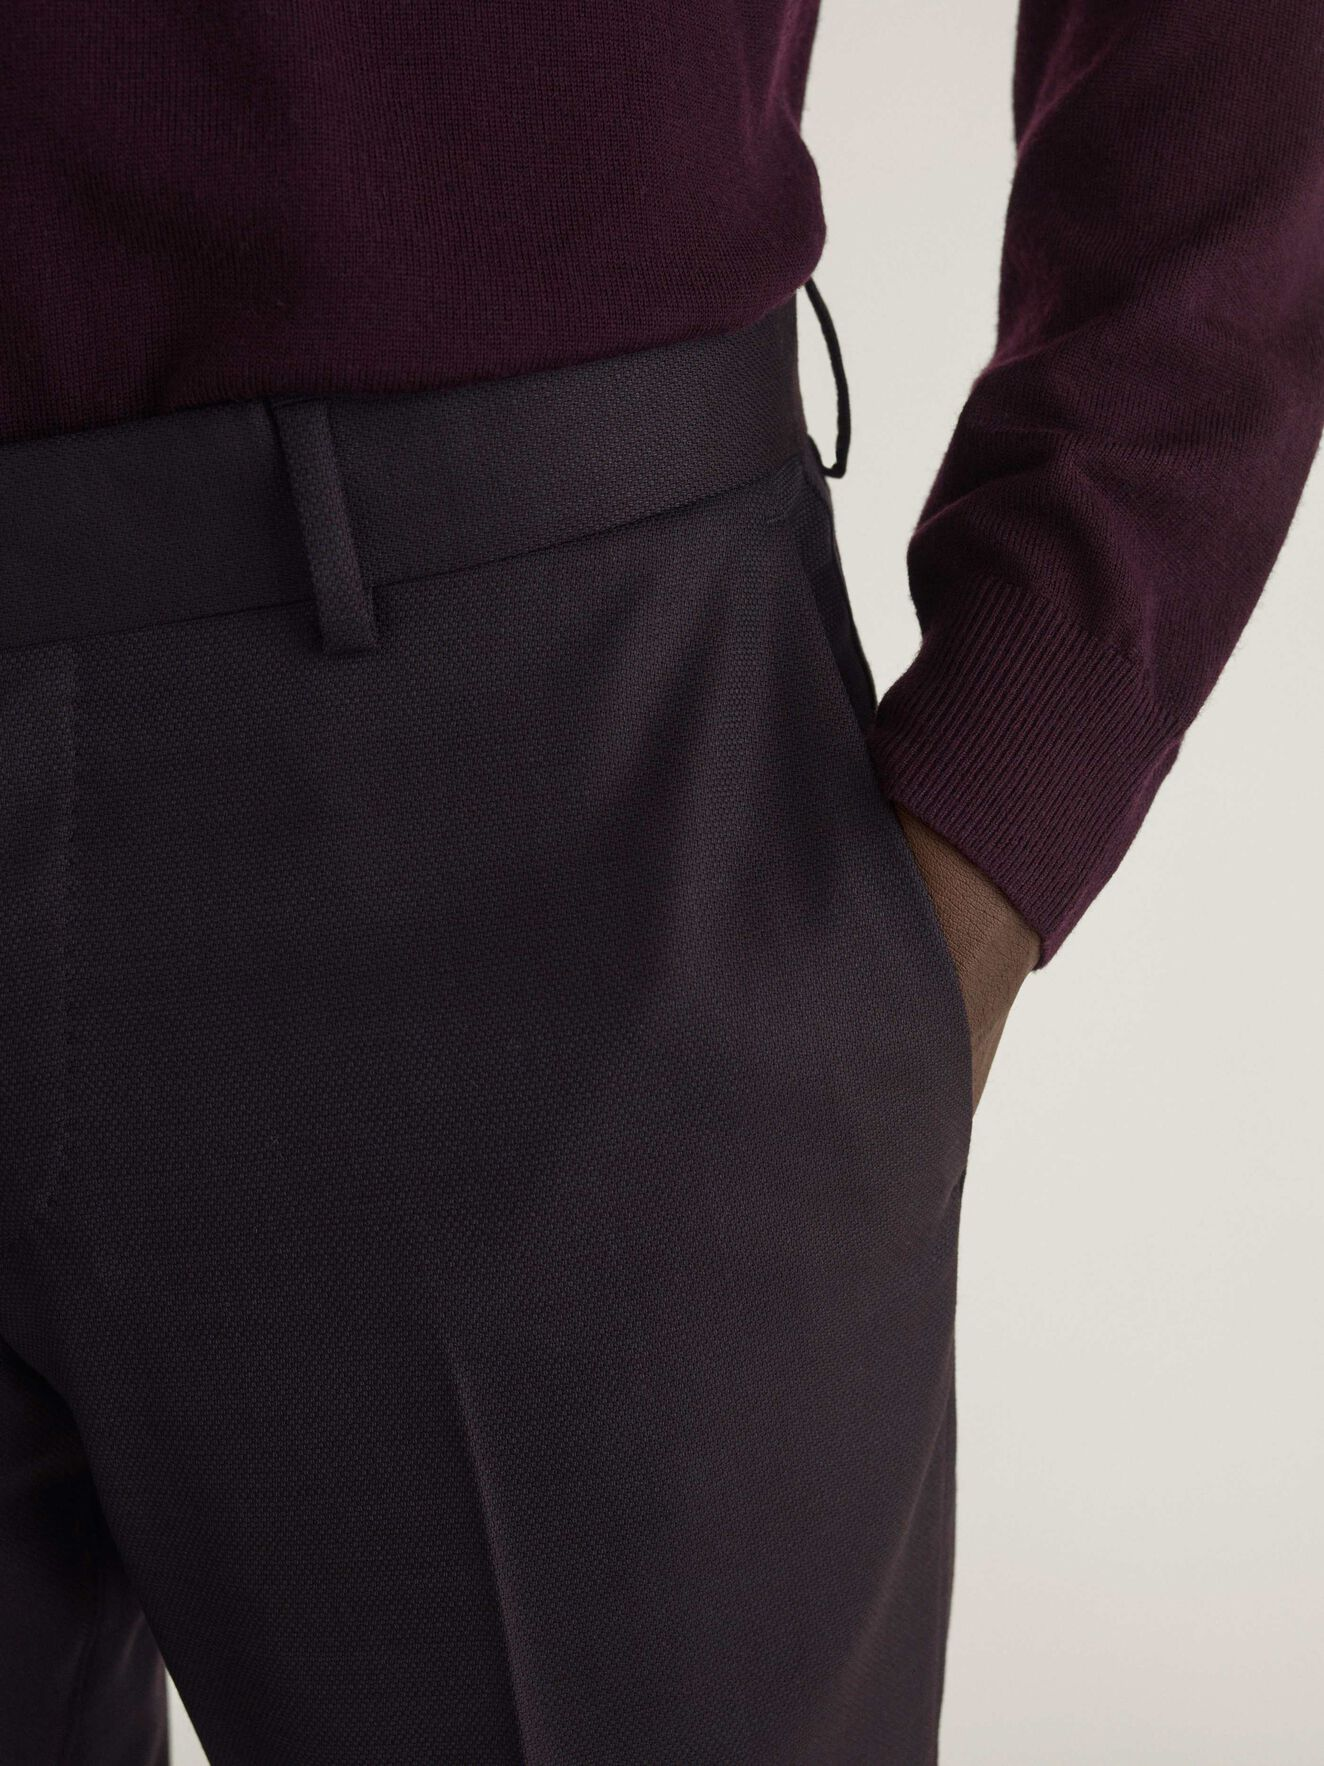 Tordon Trousers in Noon Plum from Tiger of Sweden